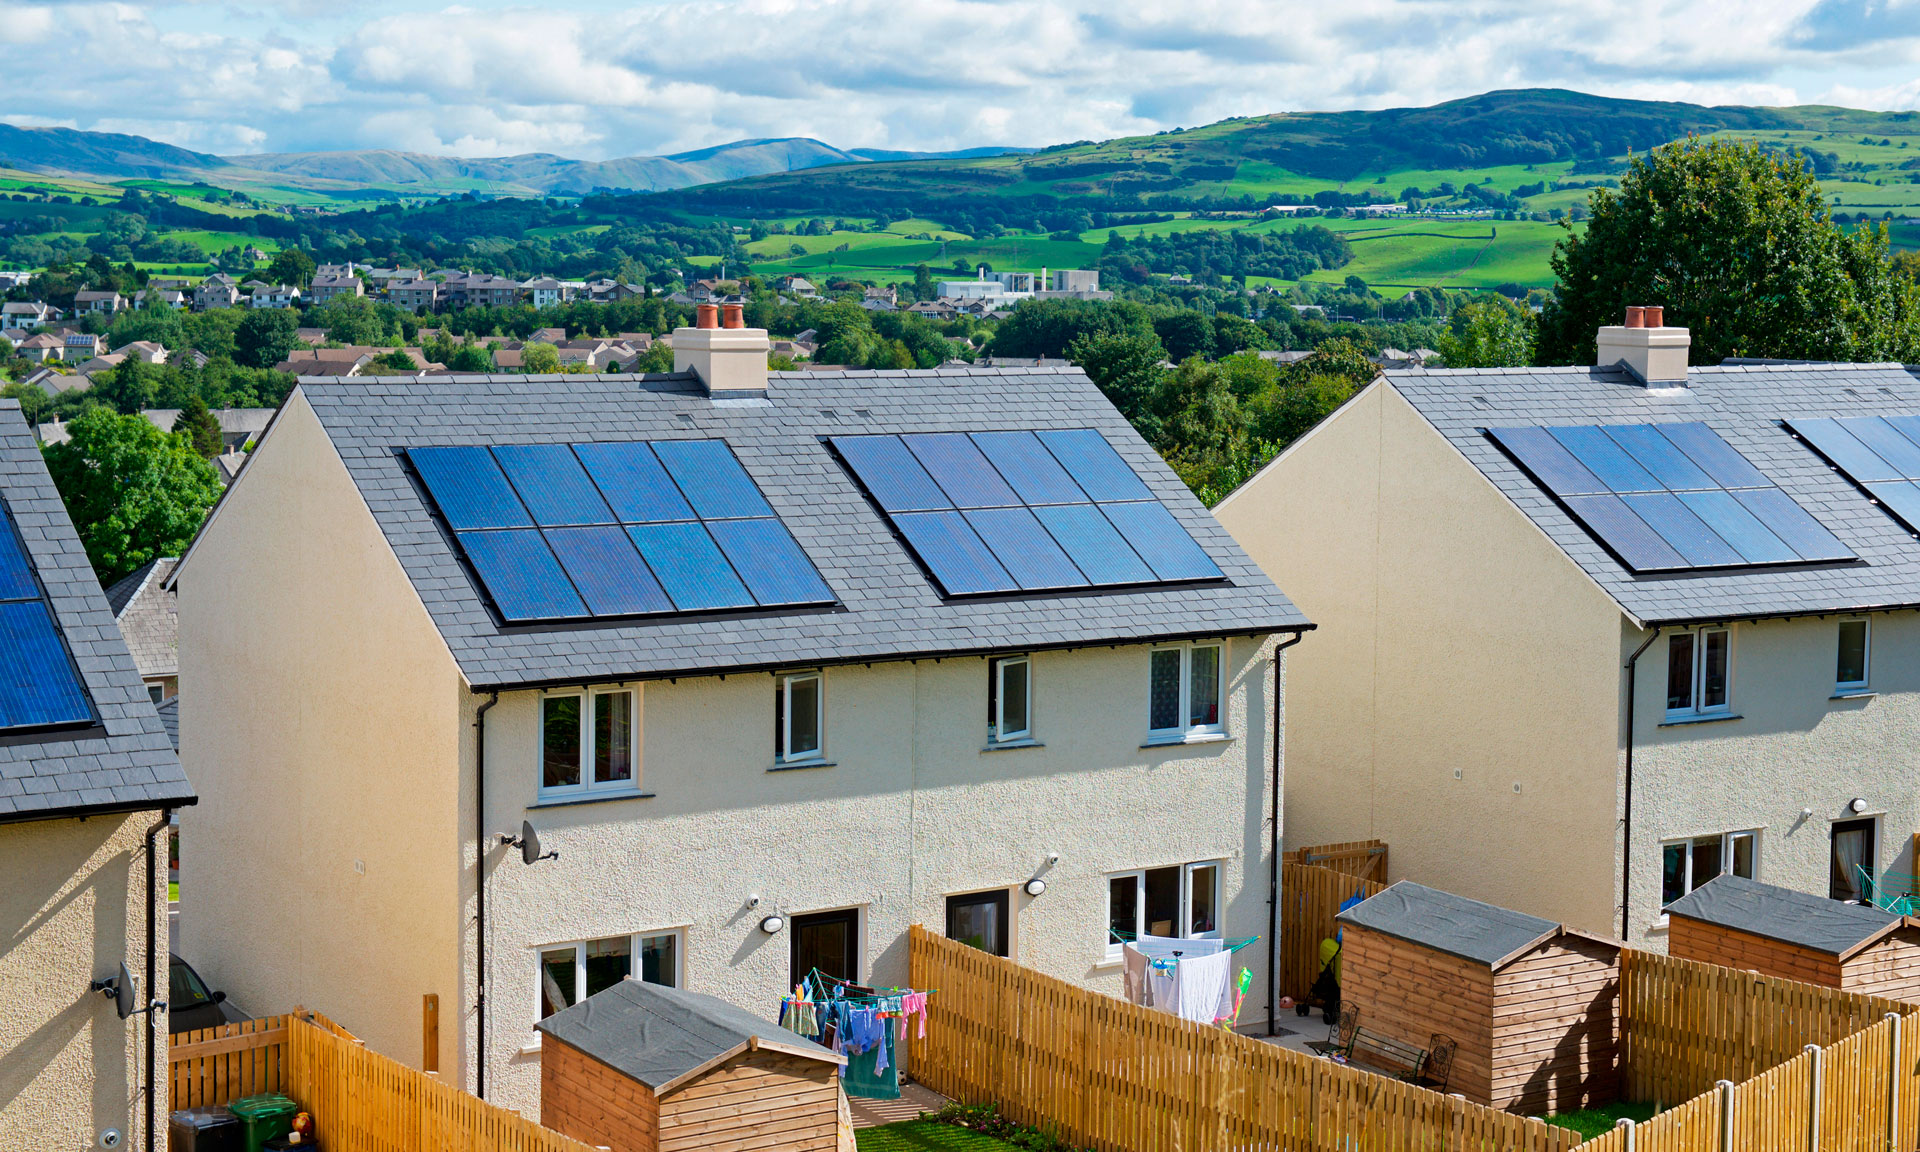 Solar panel myths: five common concerns about solar PV debunked – Which? News